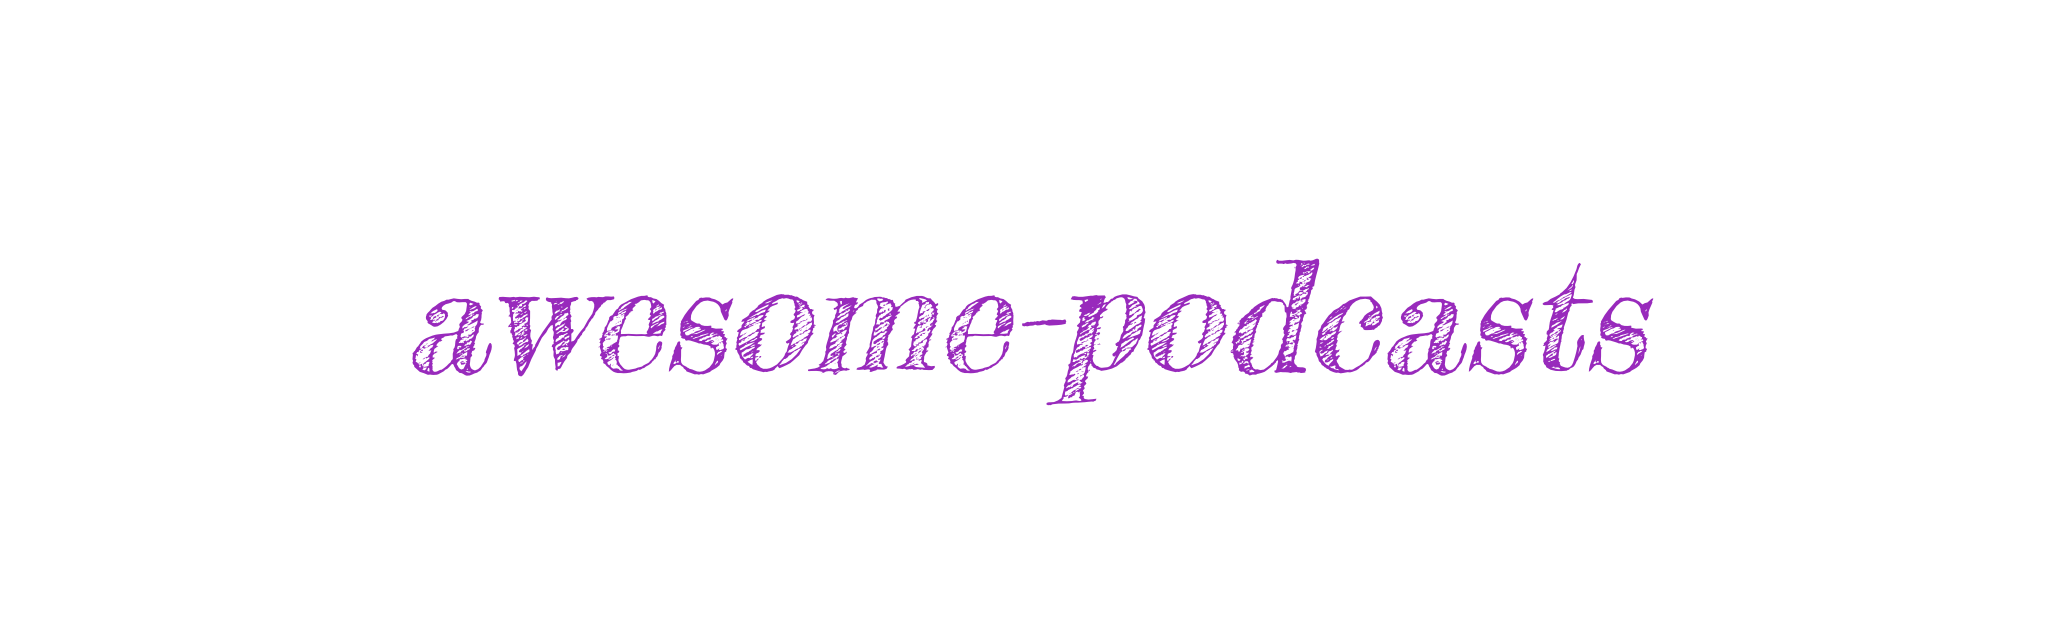 awesome-podcasts